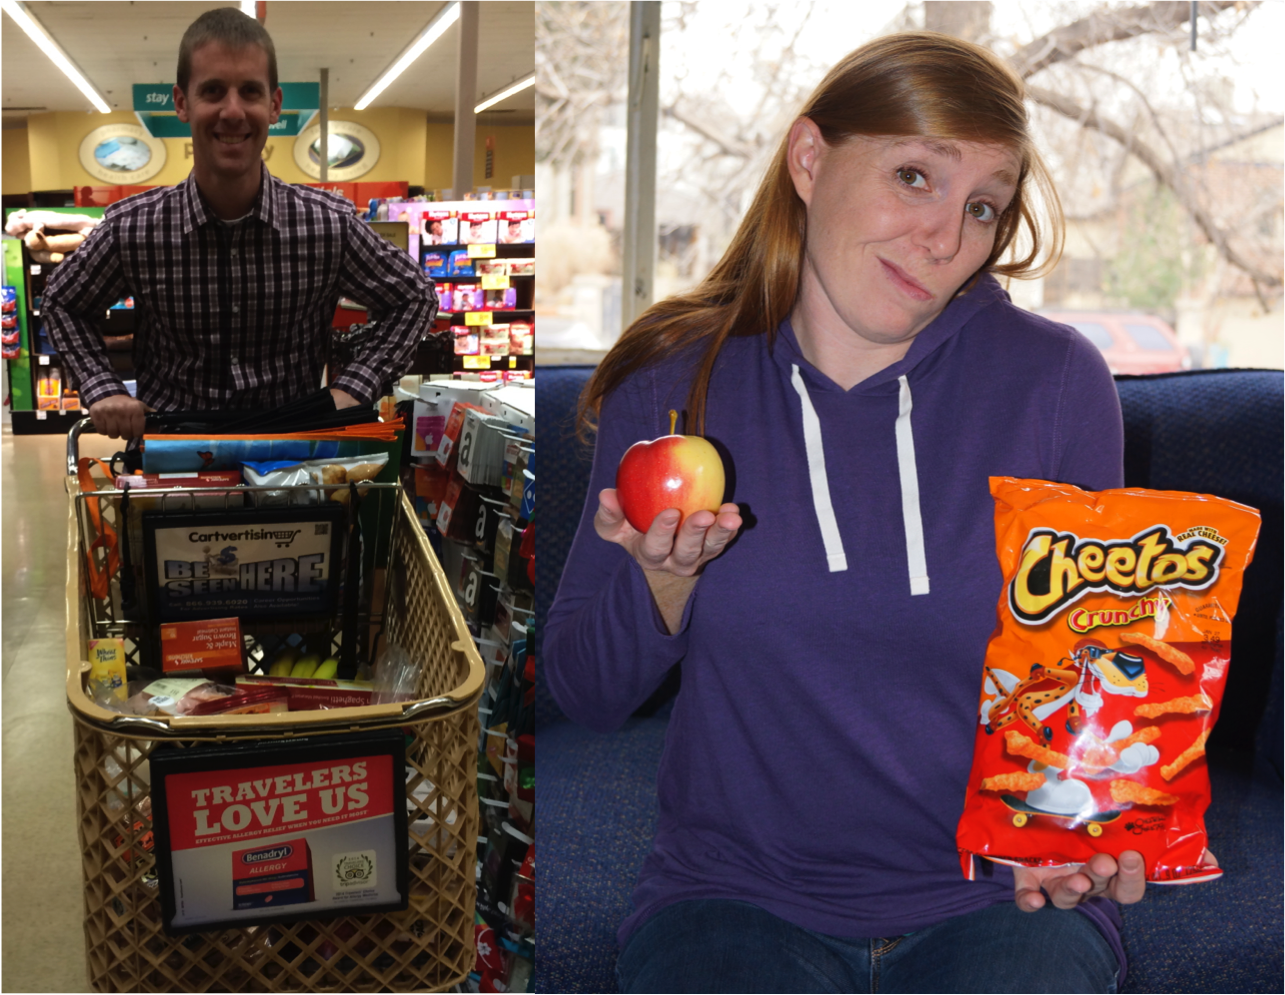 Cheetos or an apple - why grocery shopping is important